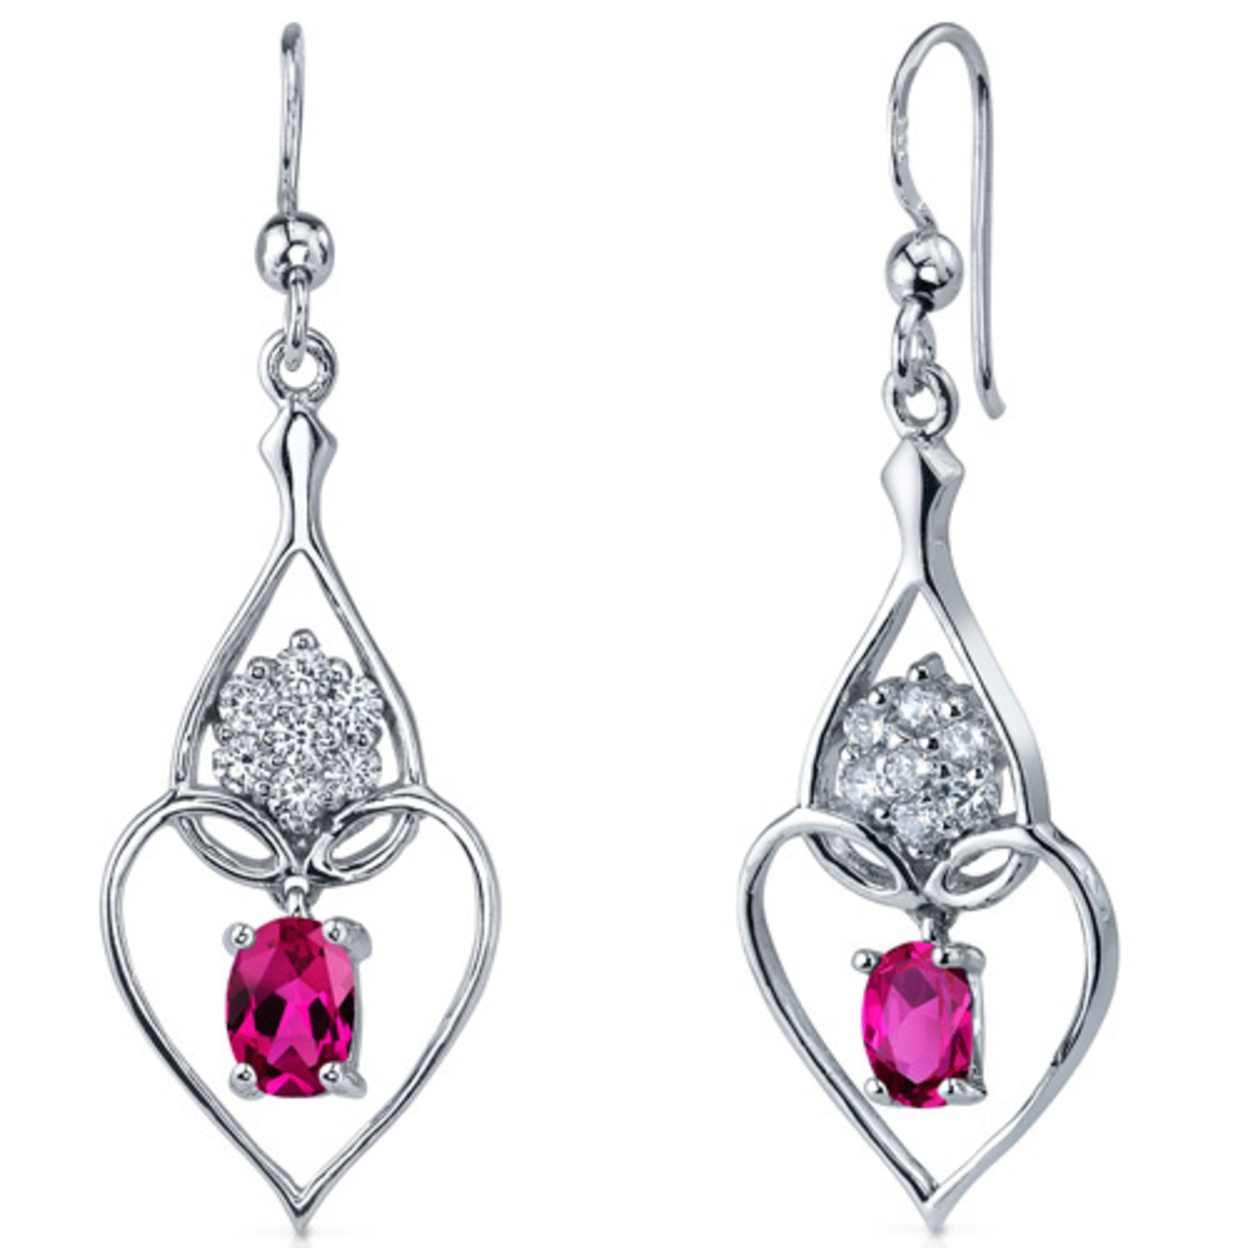 Illuminating Hearts 2.00 Carats Ruby Oval Cut Dangle Cz Earrings In Sterling Silver Style Se7268